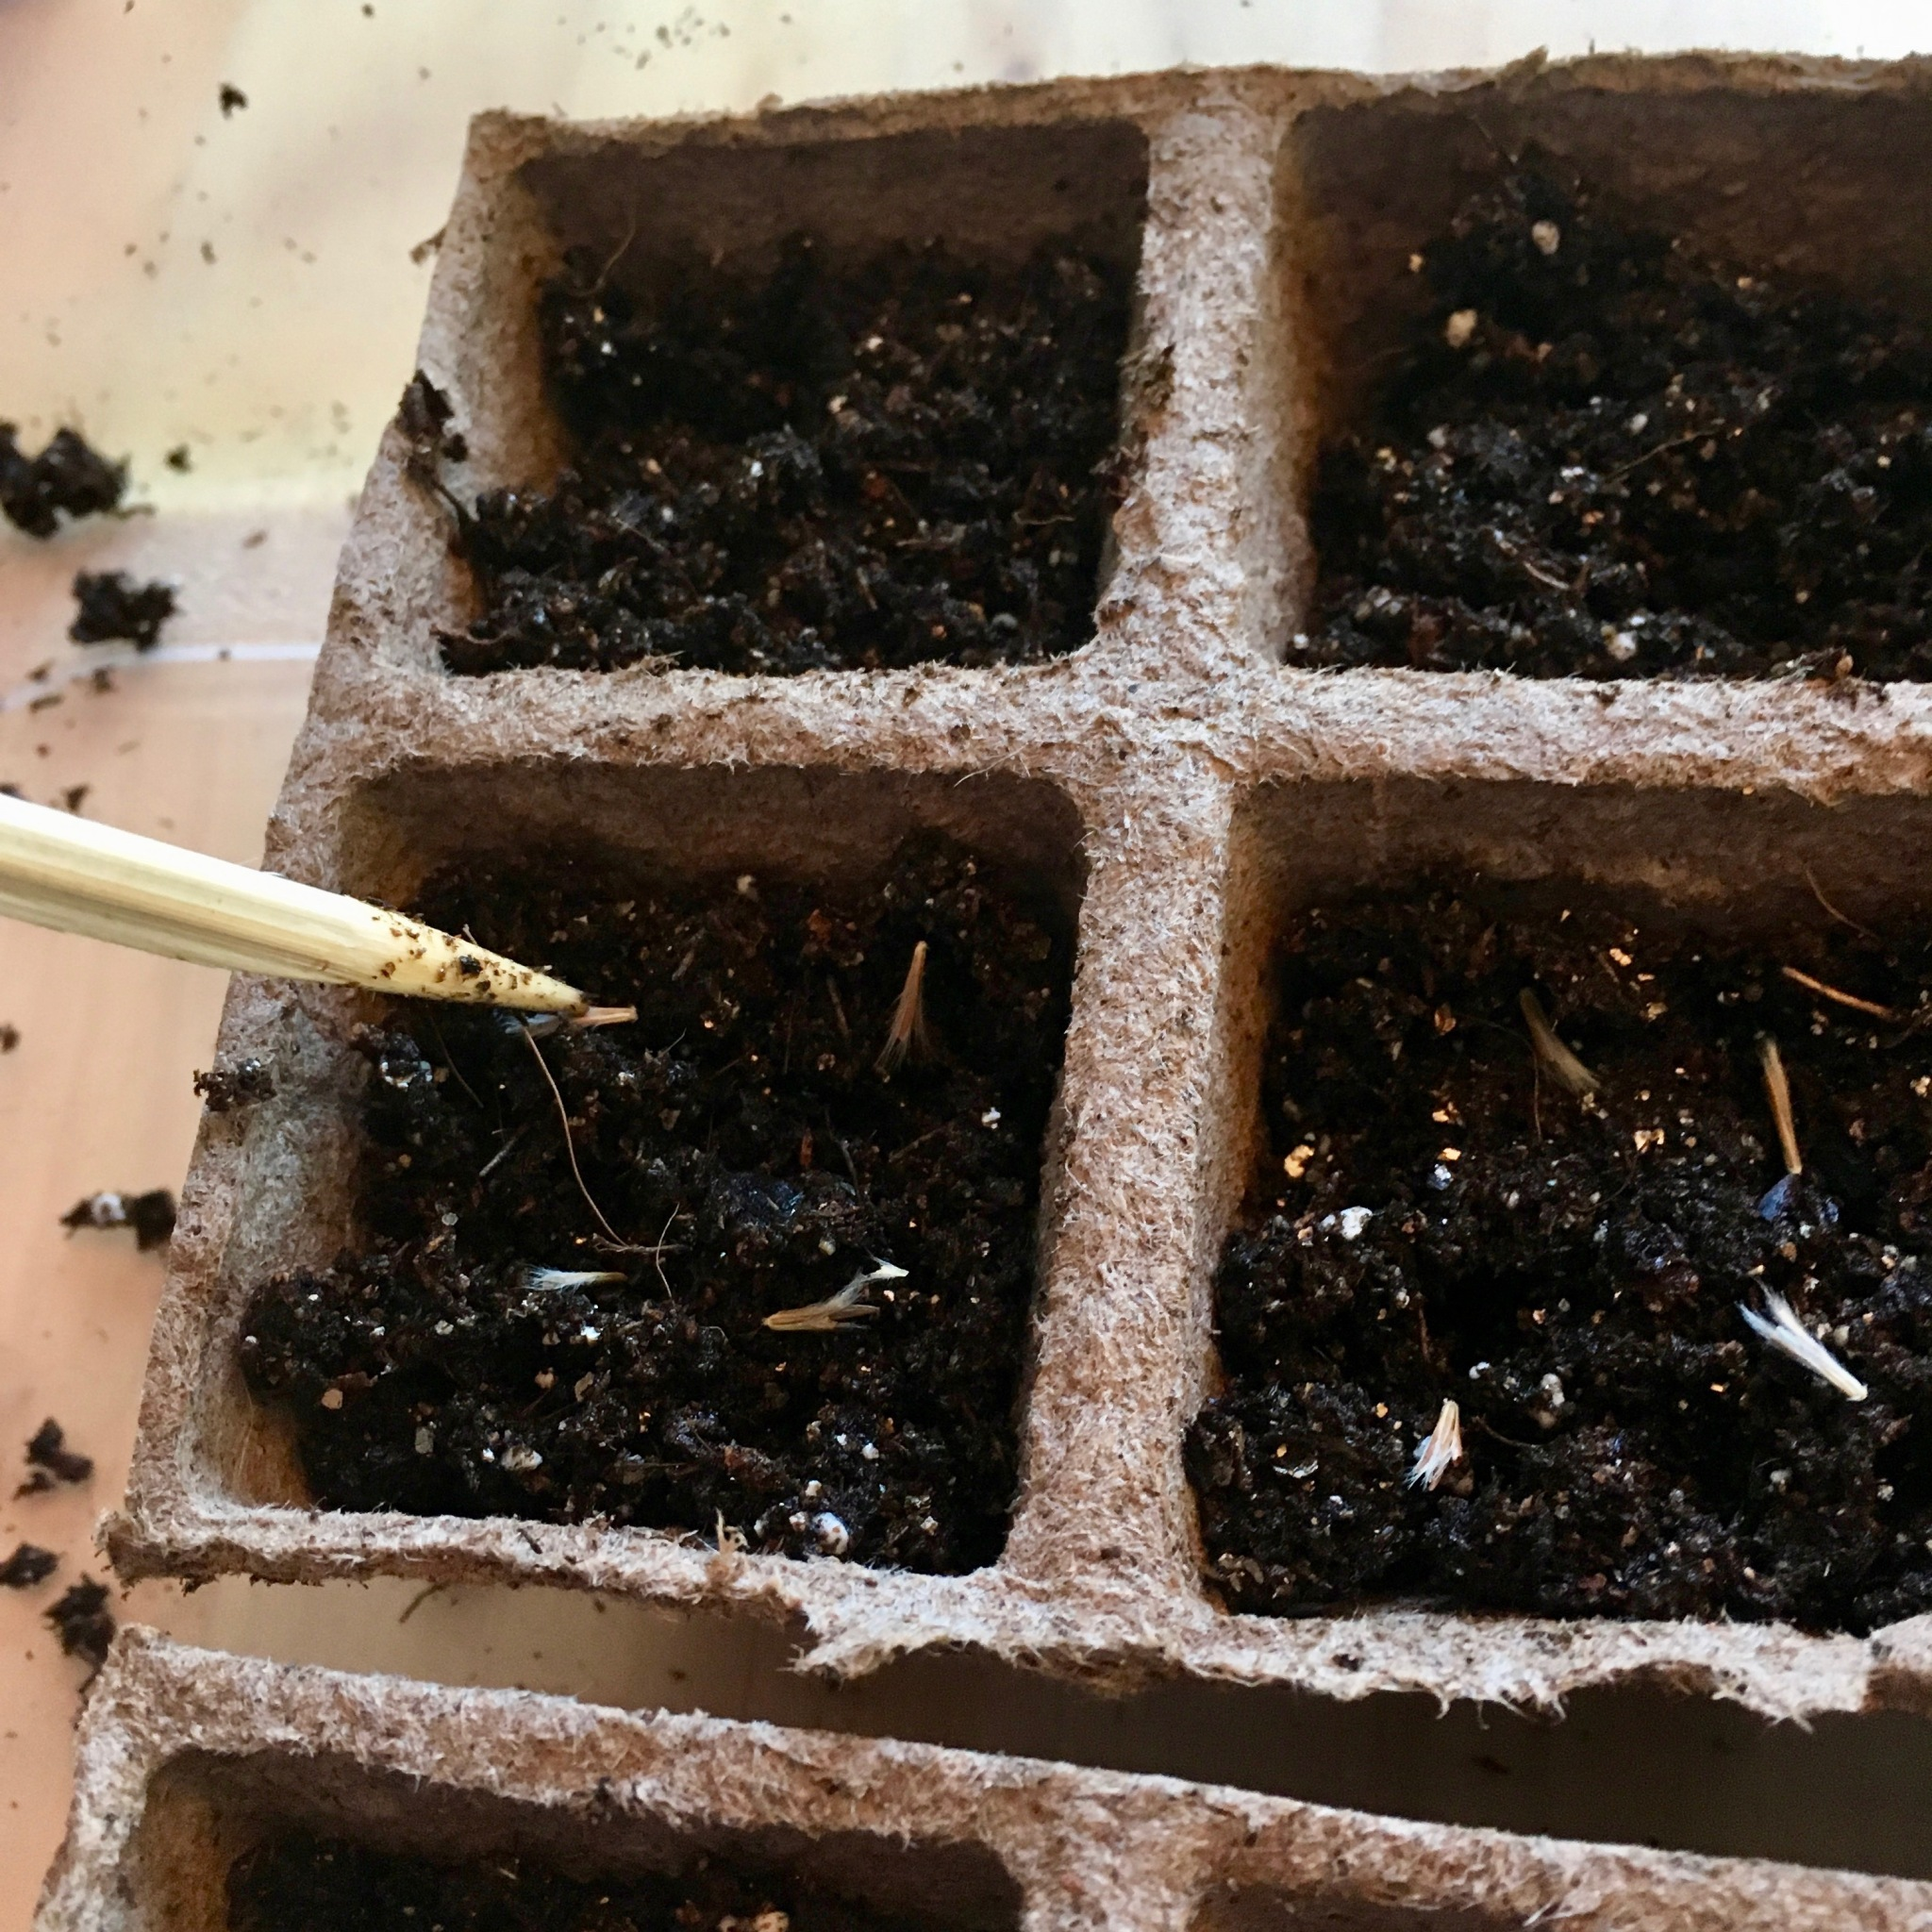 poking bluestem seeds into soil